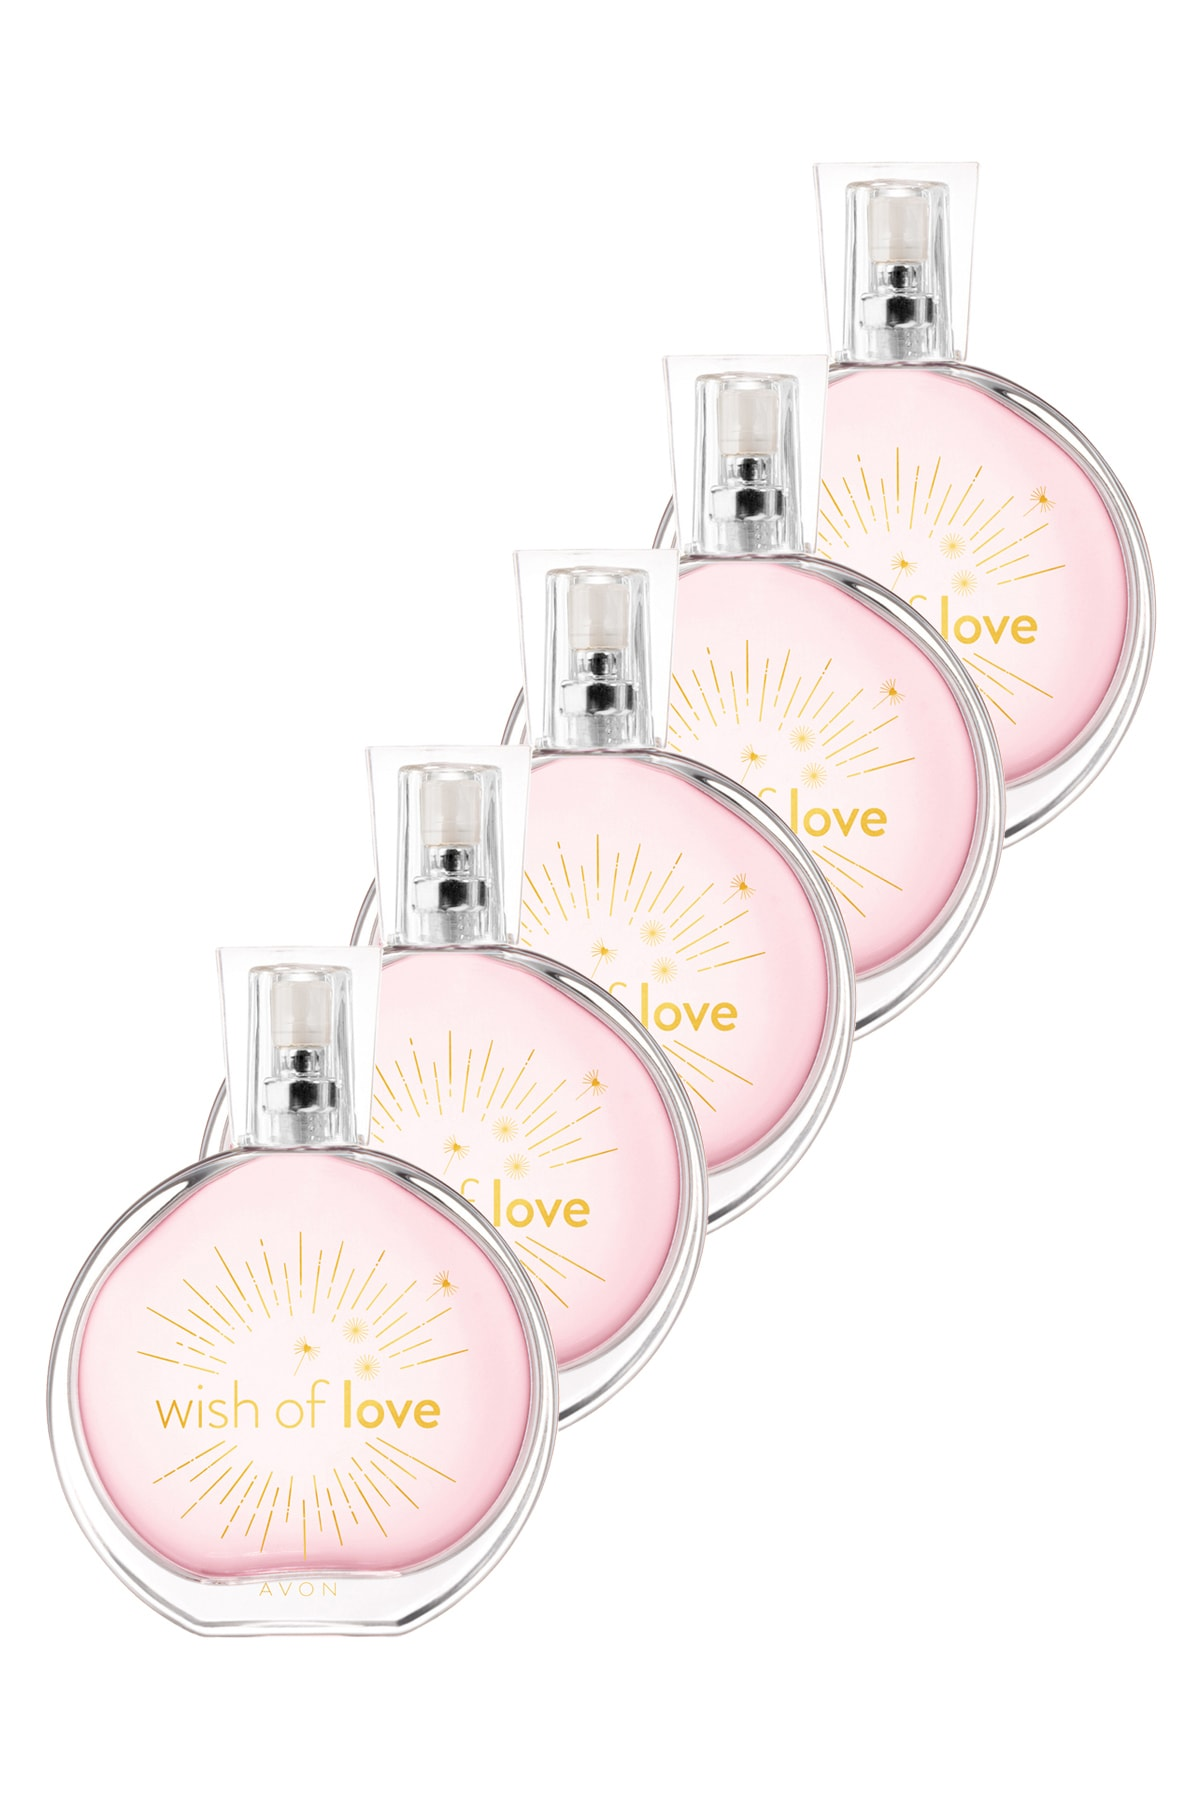 Avon Wish Of Love Kadın Parfüm Edt 50 ml 5'li Set 5050000103398 0